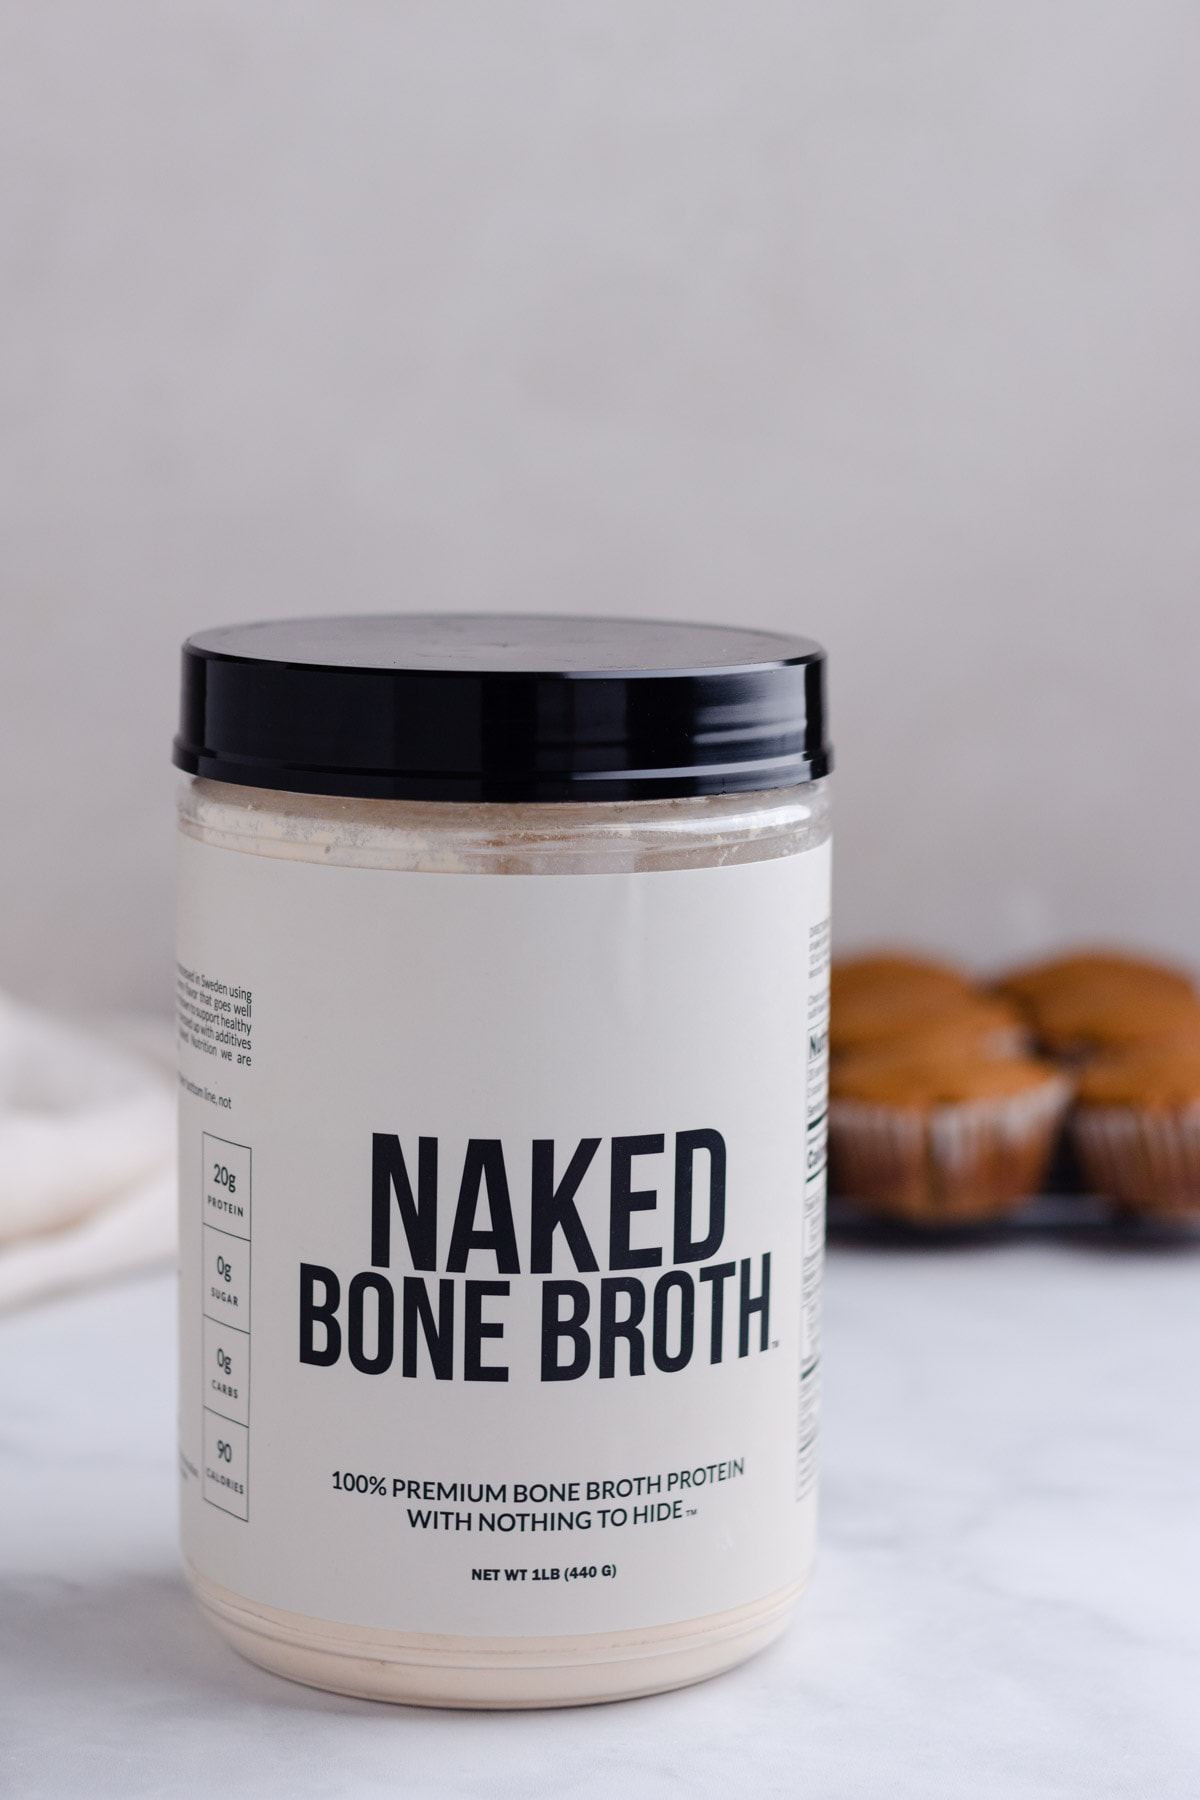 A close up of Naked Bone Broth protein powder with muffins in the background.